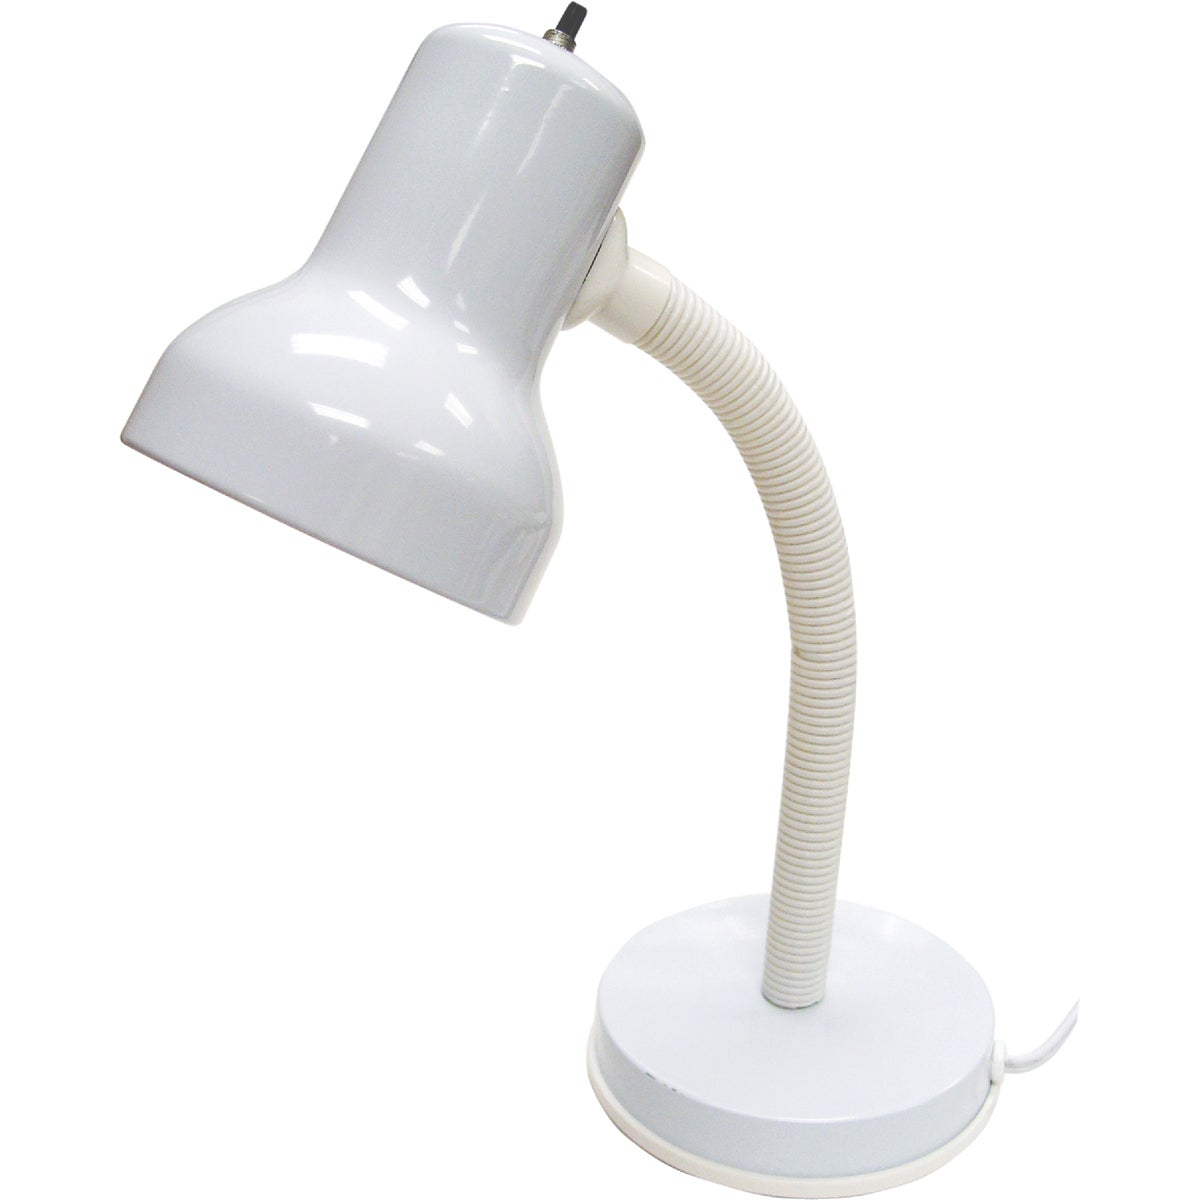 60W WHT GSNCK DESK LAMP - LS-211WHT by Lite Source